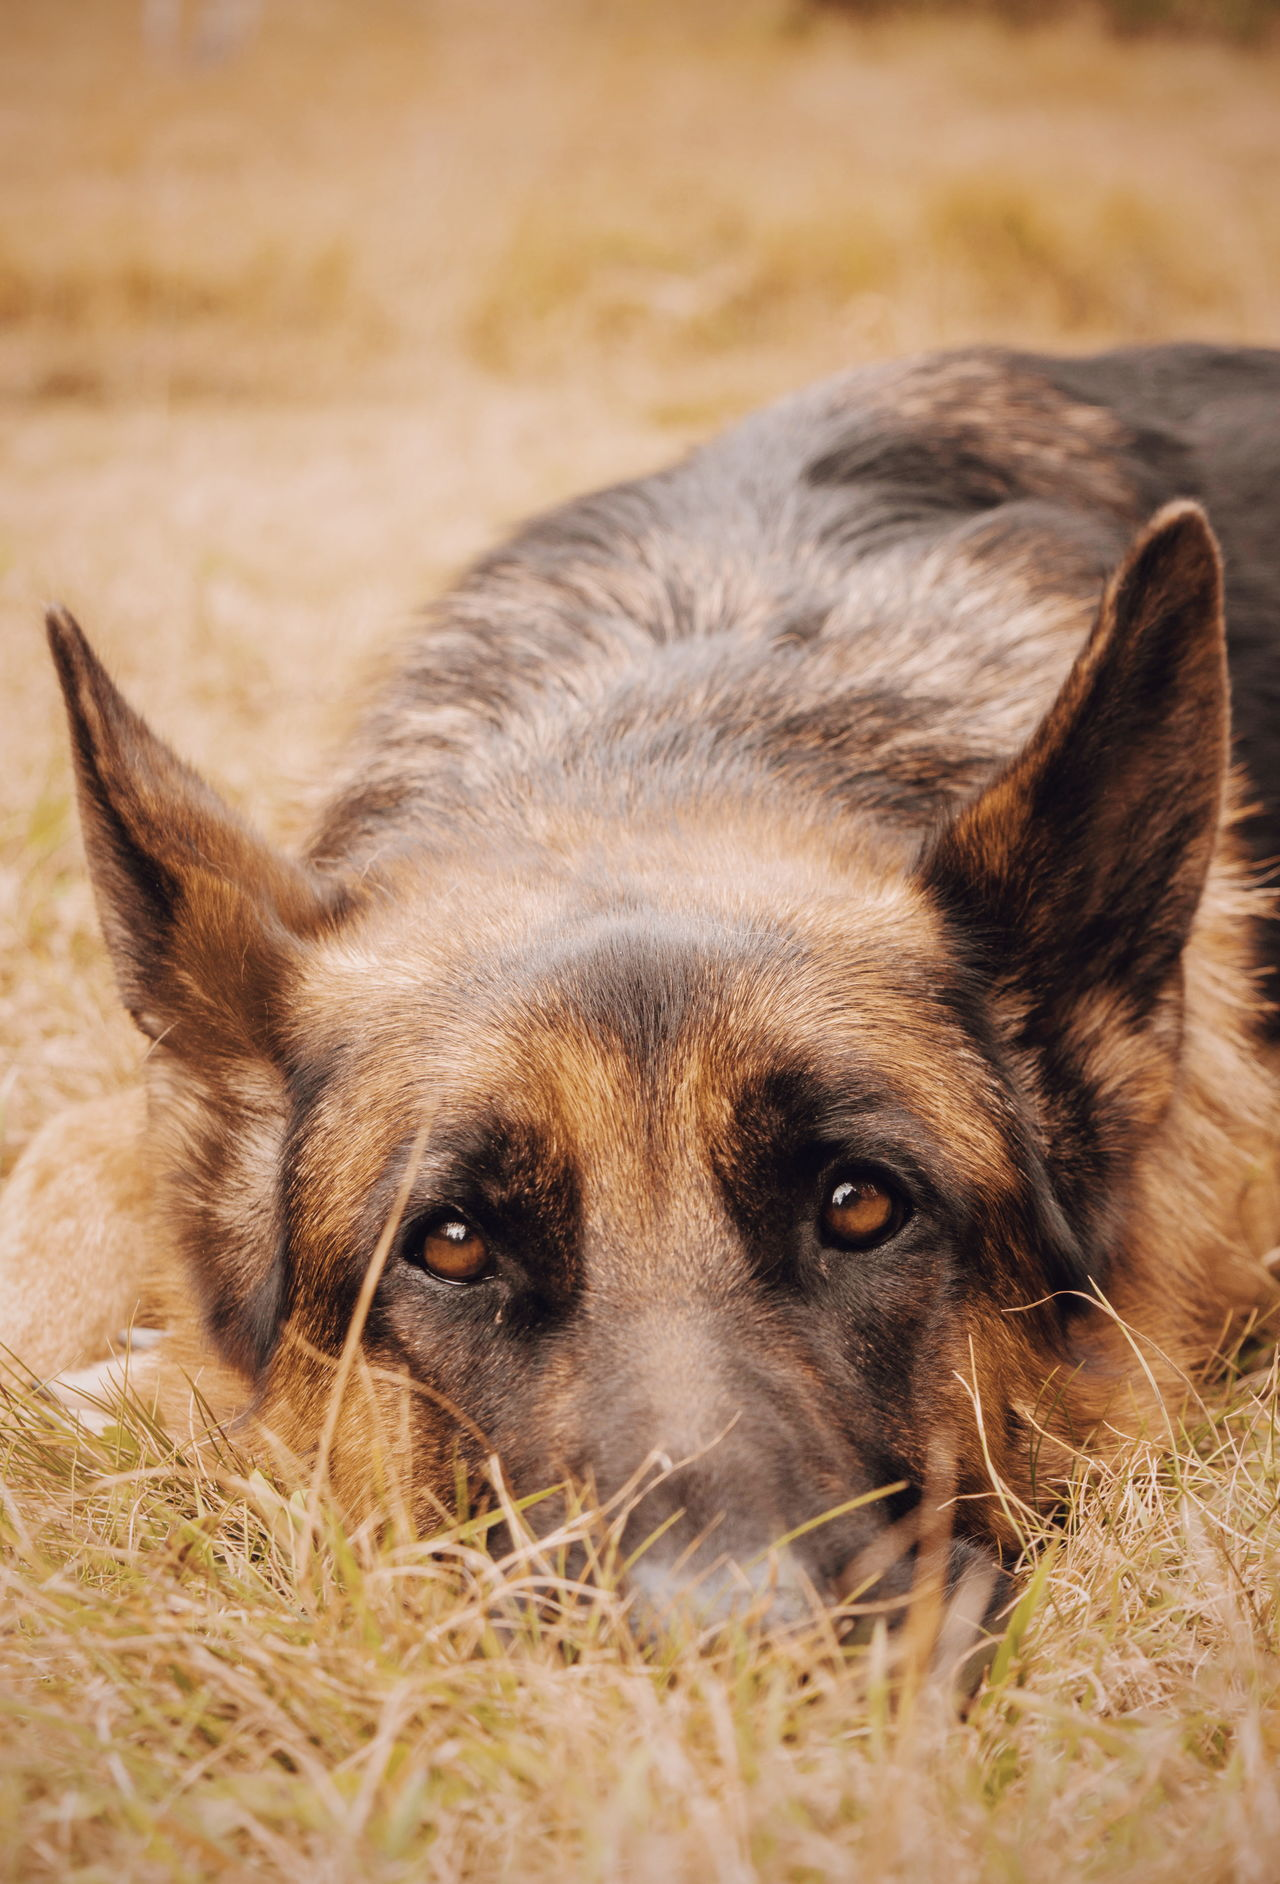 His eyes. Animal Themes One Animal Domestic Animals Pets Dog Animal Head  Close-up Looking At Camera Animal Body Part Portrait Focus On Foreground Field Relaxation Animal German Sheperd Animal Posing Animals Germanshepherd